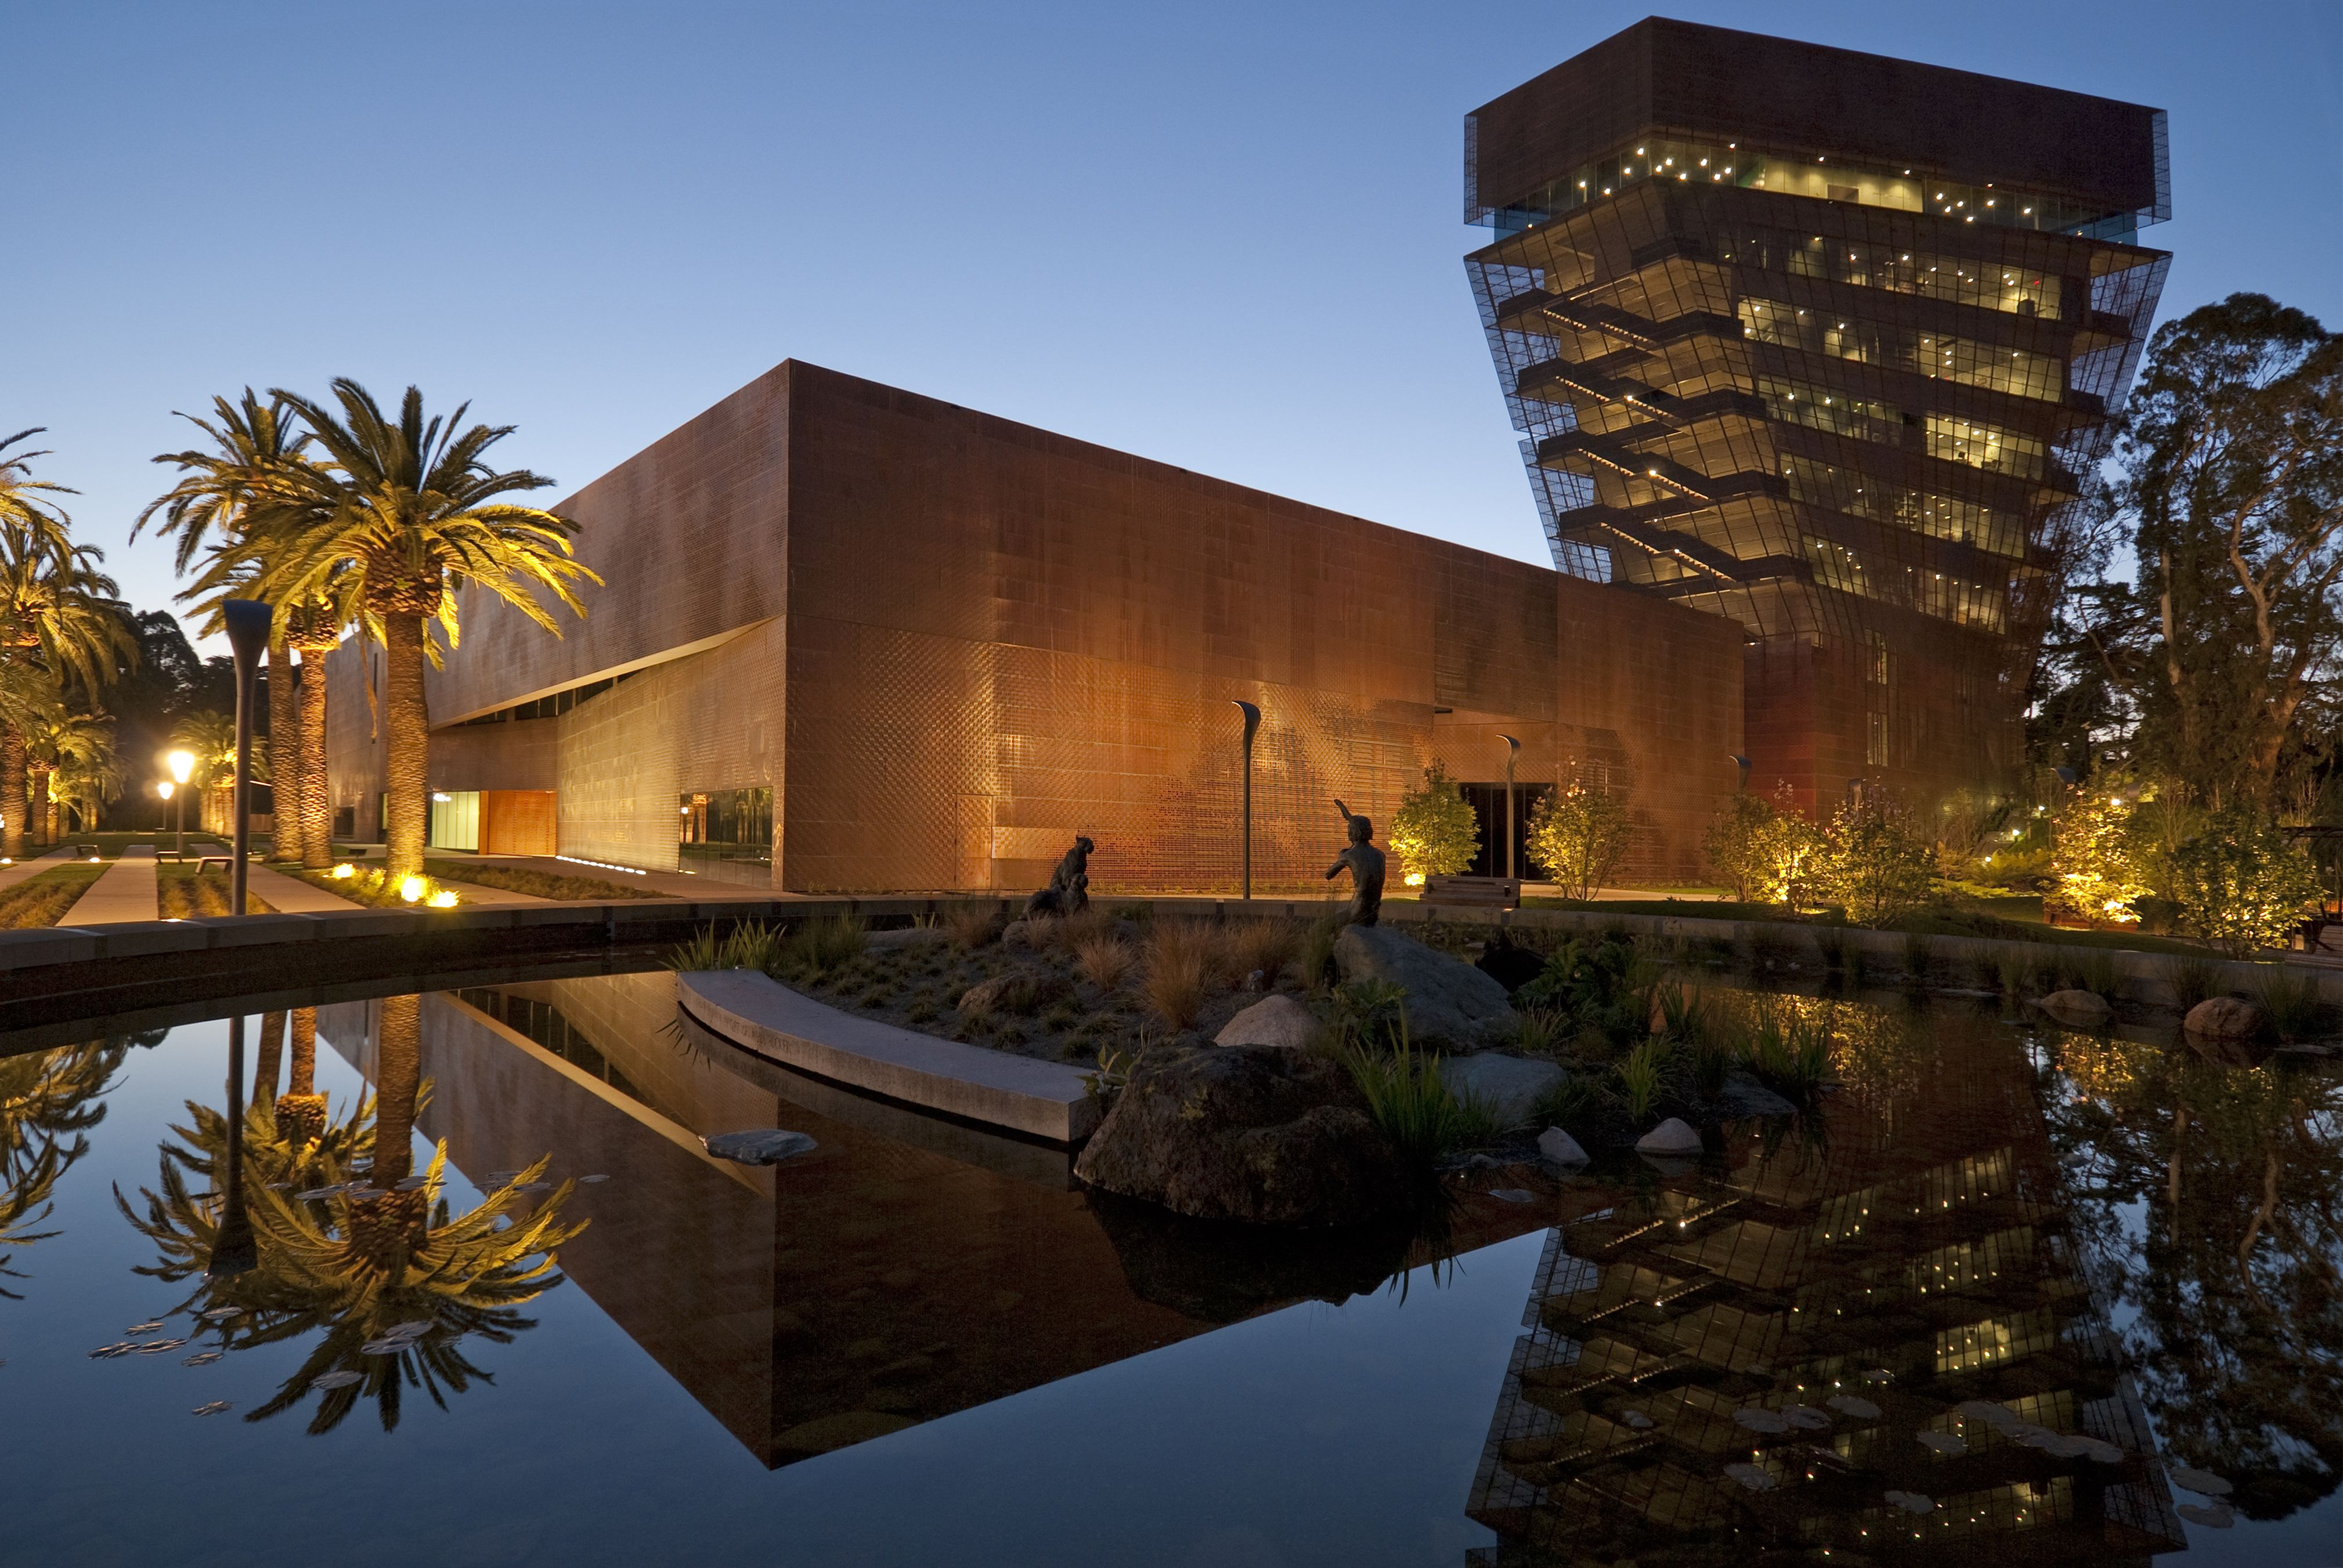 Car Share San Francisco >> De Young Museum: How to See the San Francisco Art Museum